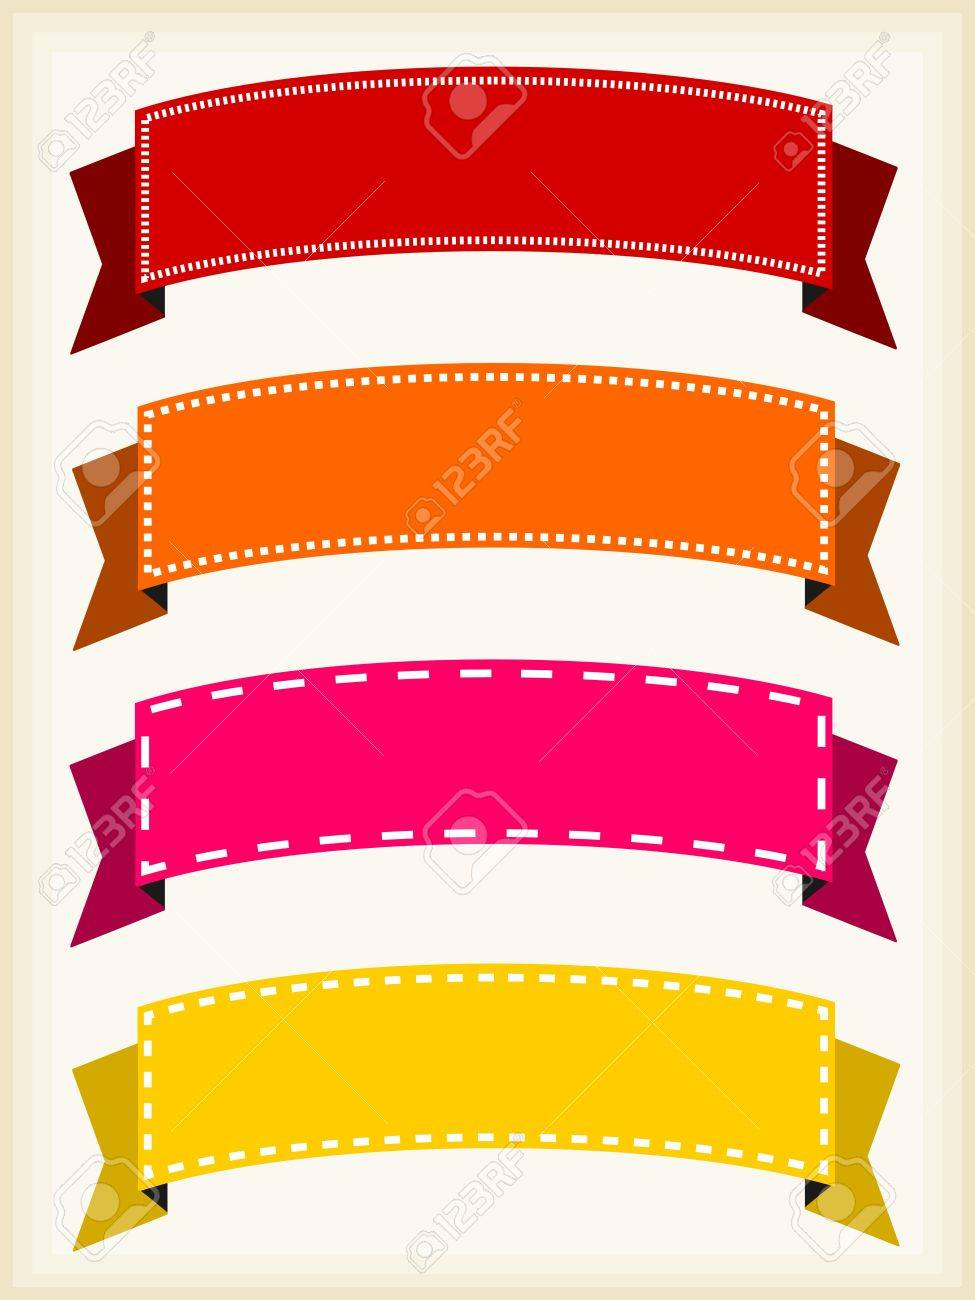 colorful ribbon banners - empty banner template with copyspace, Powerpoint templates